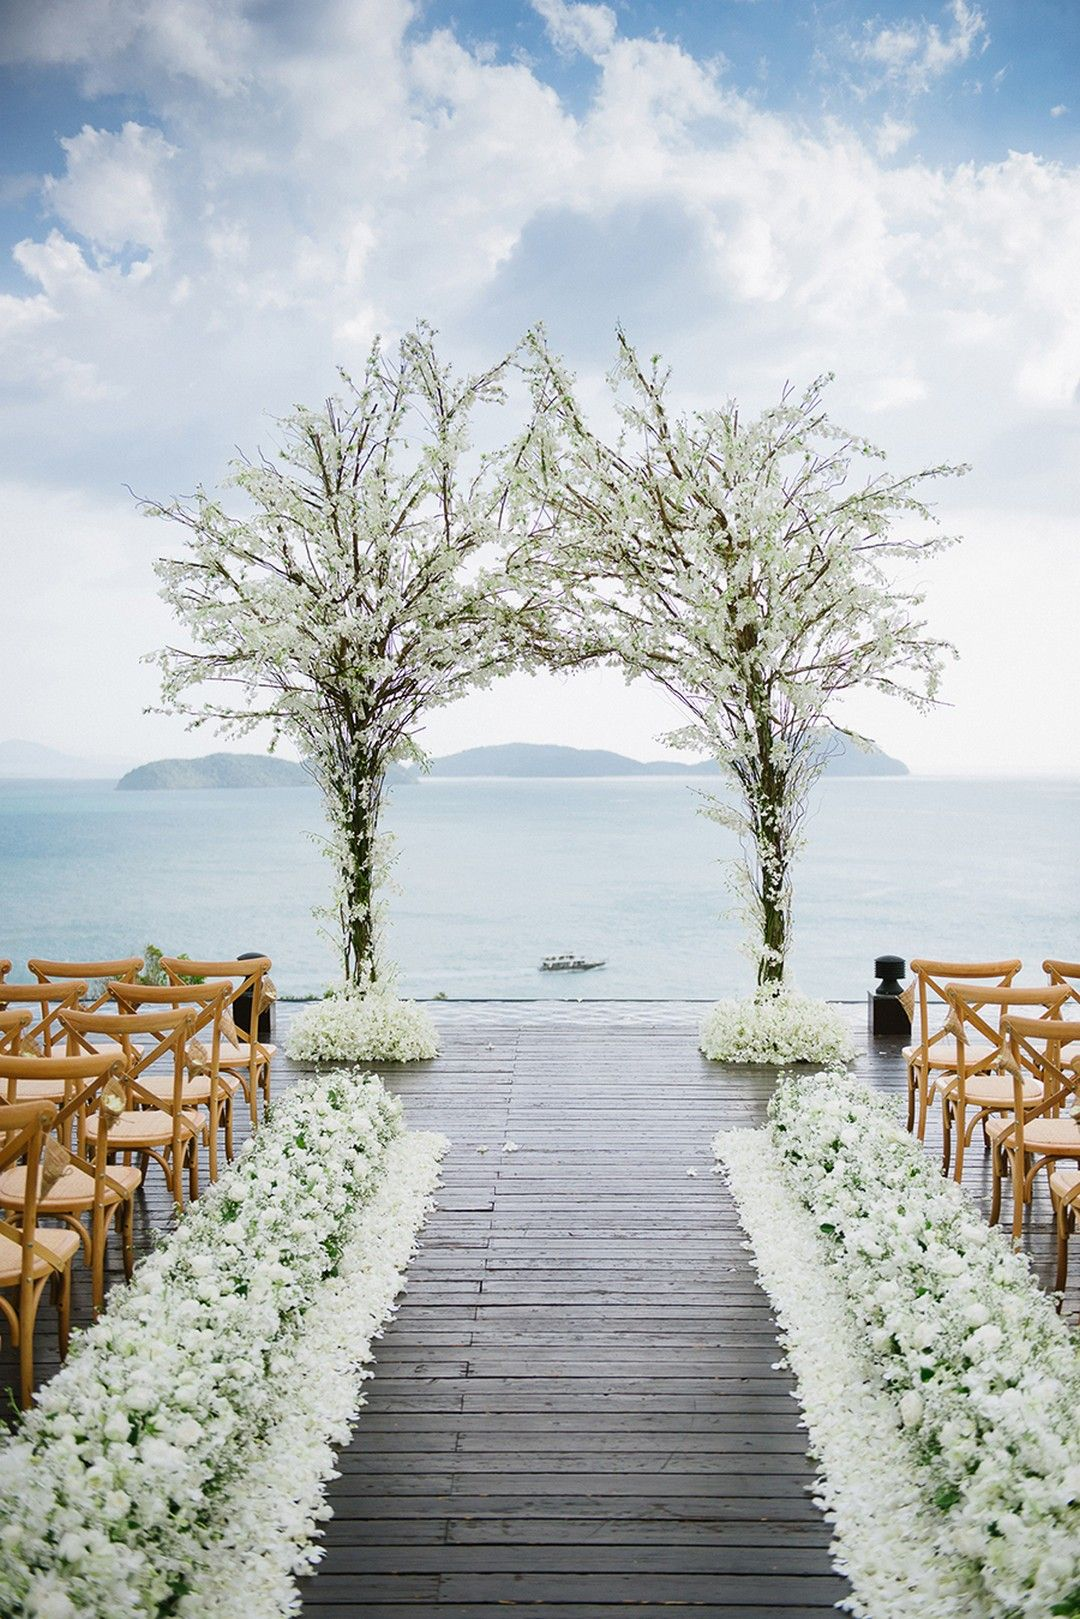 Wedding decoration ideas at the beach  nice  DIY Wedding Decoration Ideas to Save Budget for Your Big Day